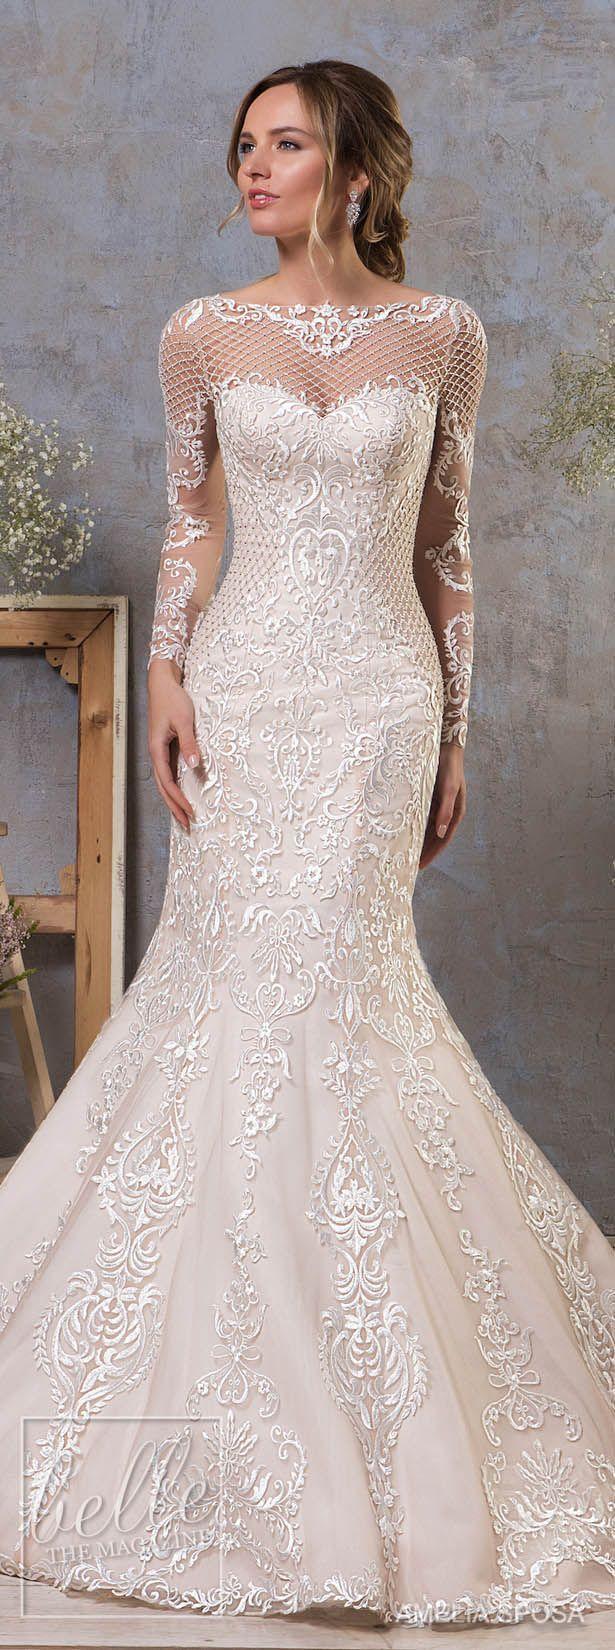 Amelia Sposa <—- I love certain aspects about it, although these types of dresses, mermaid/fit and flare, aren't my style ~AS